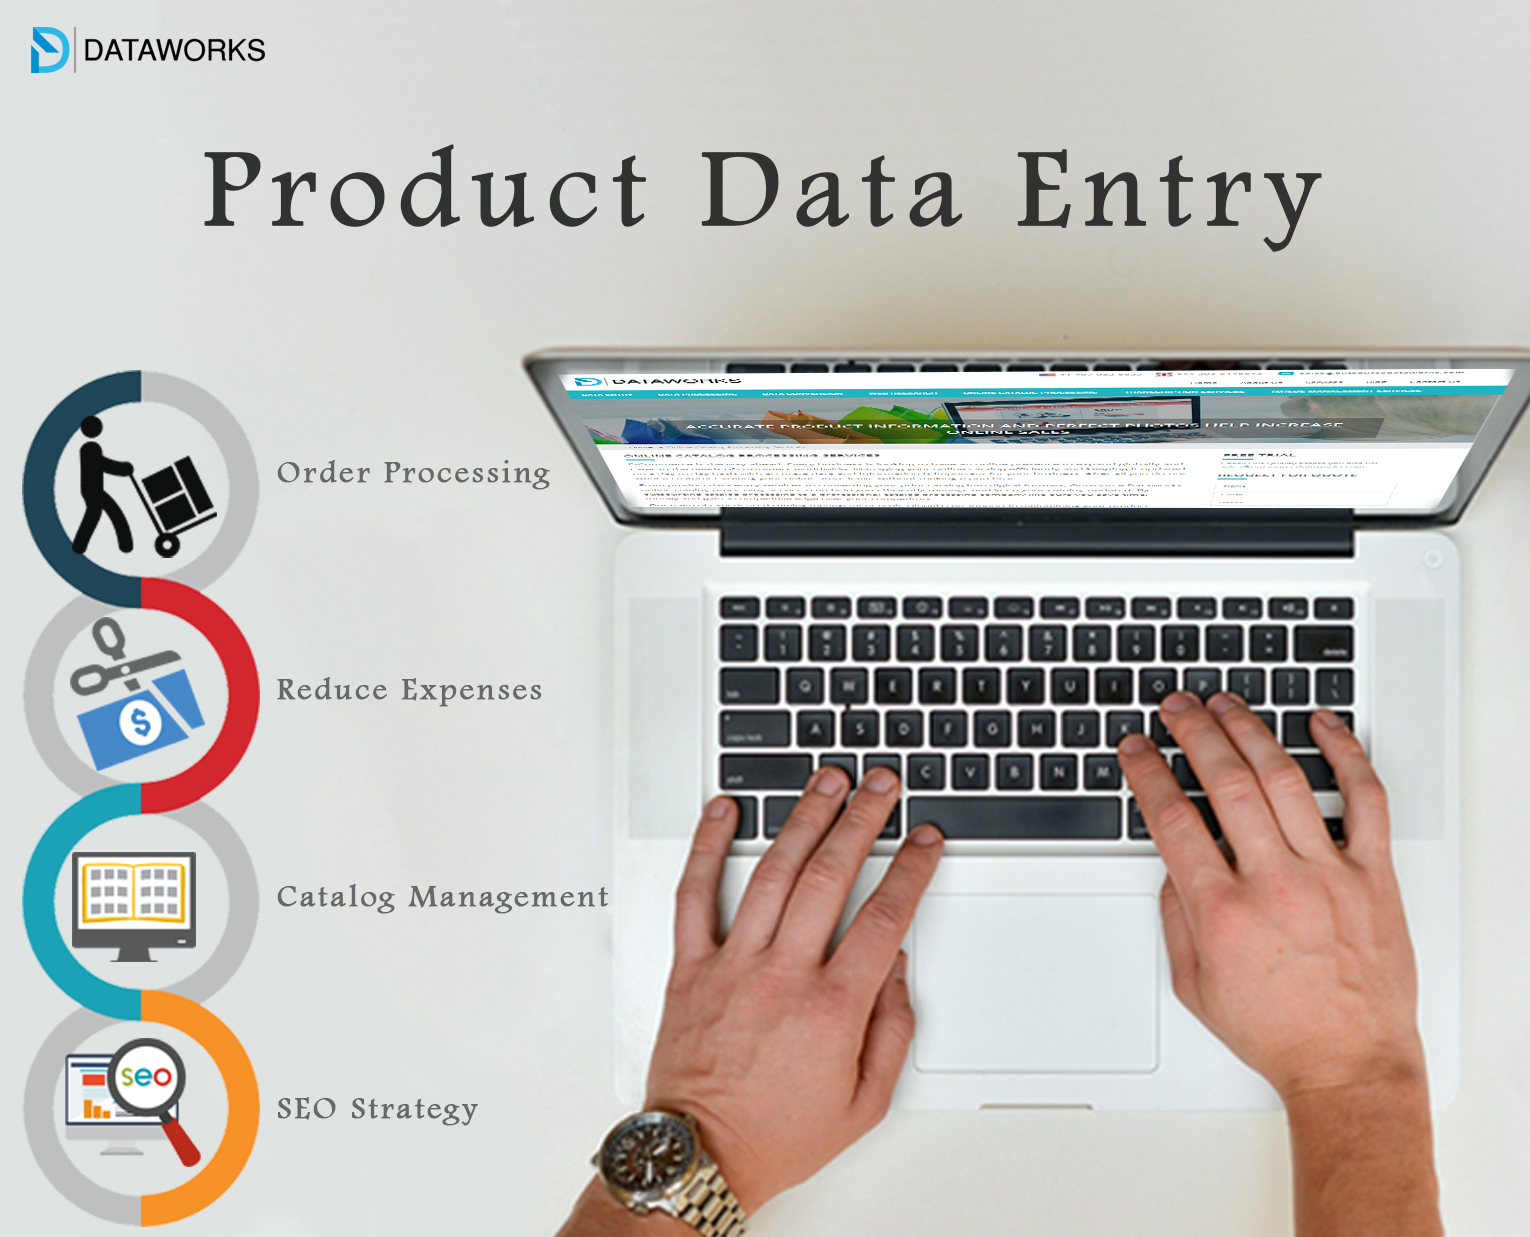 4 Major Advantages of Outsourcing Product Data Entry Services